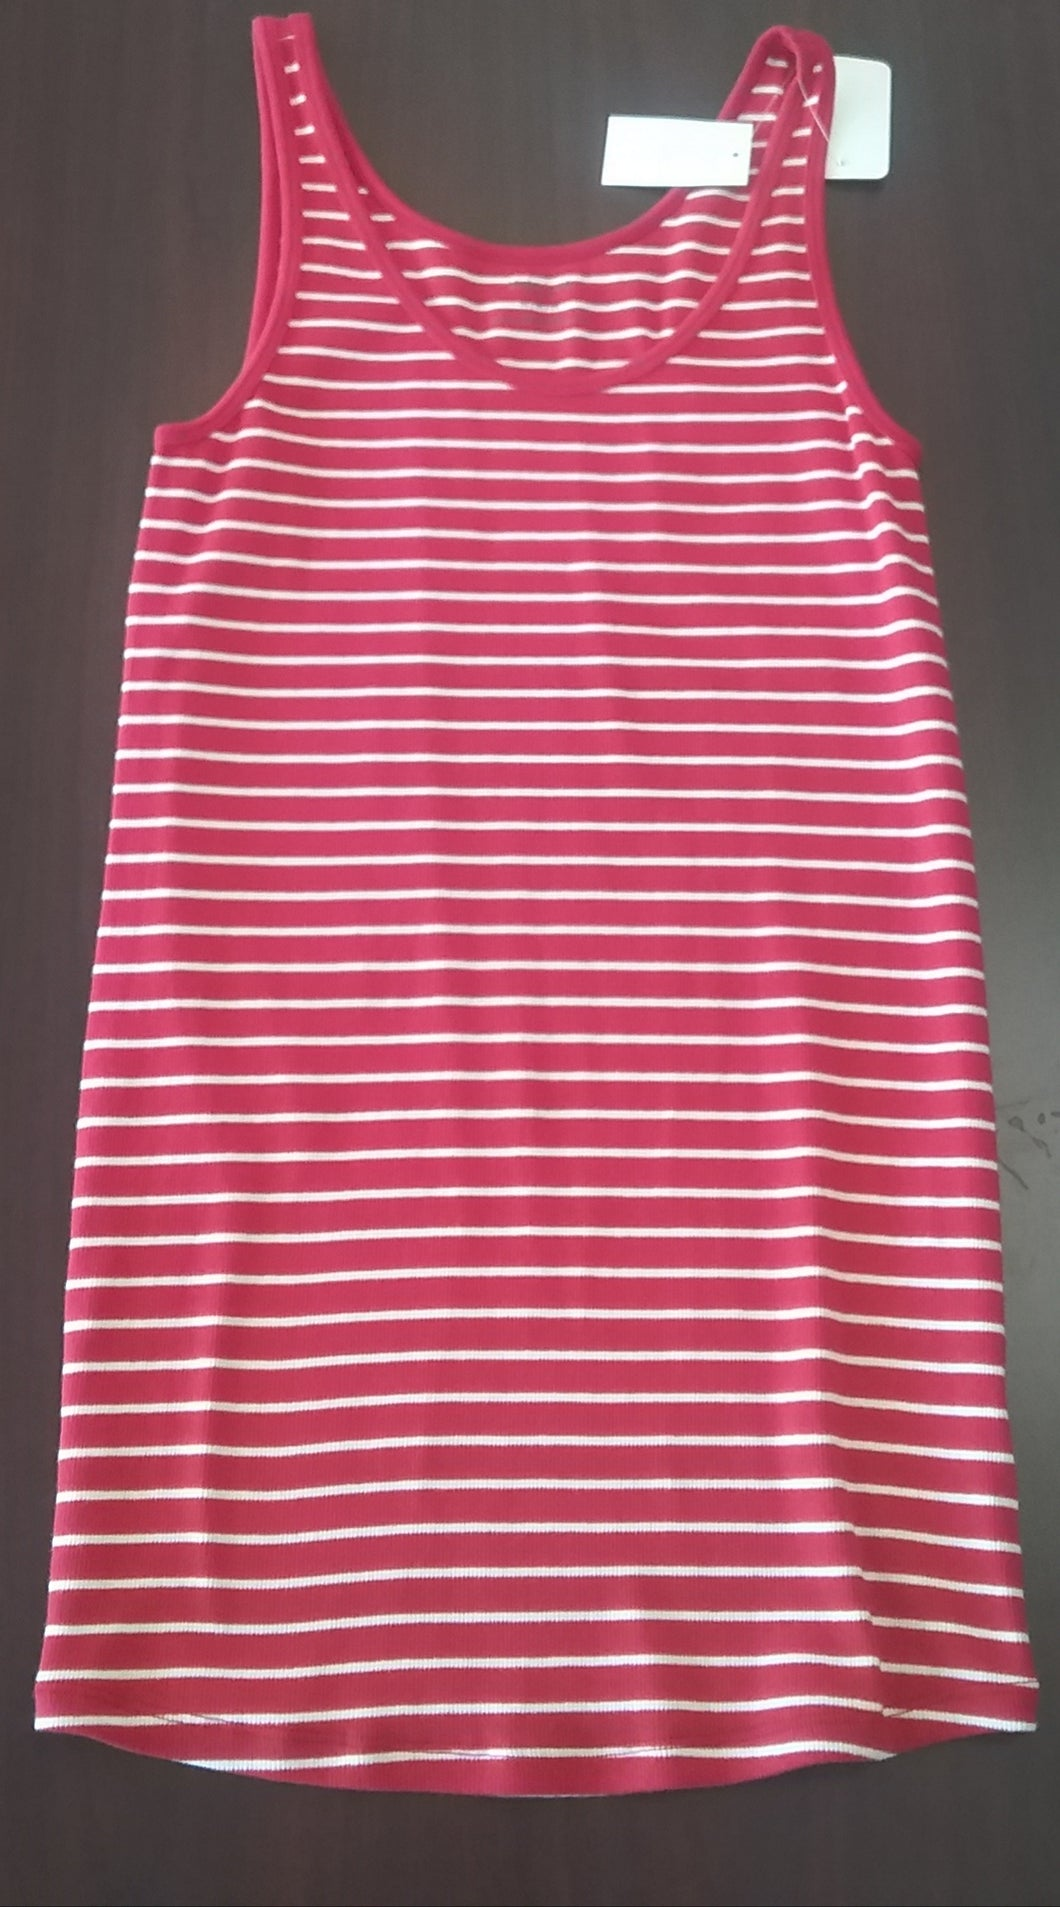 New Medium Red & White Striped Ribbed Maternity Tank